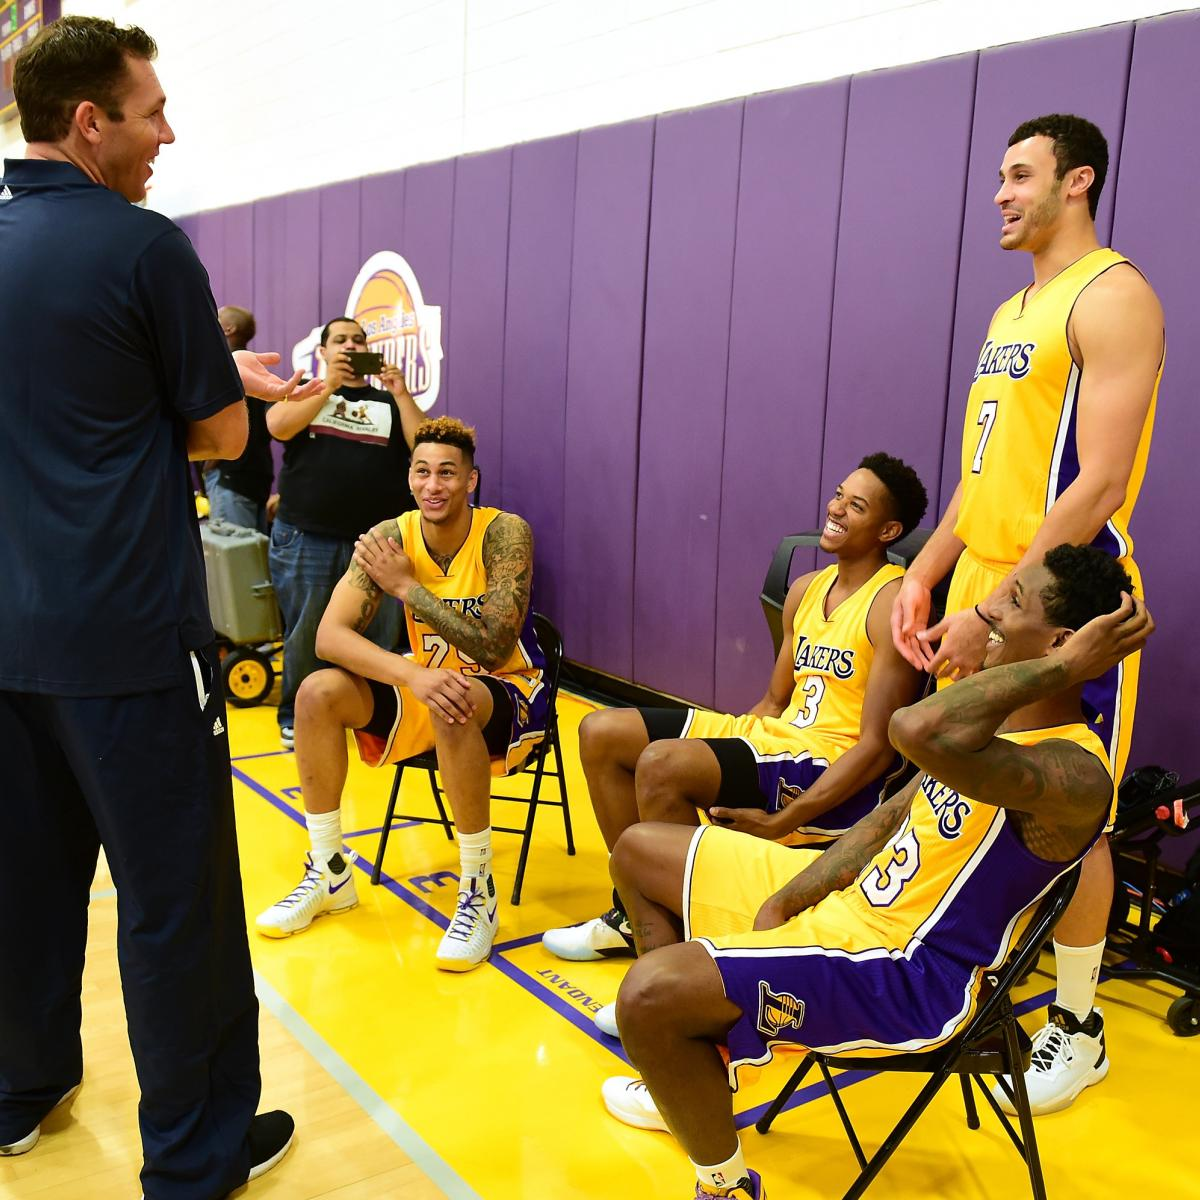 Los Angeles Lakers 2016 17 Nba Training Camp Roster Rankings Bleacher Report Latest News Videos And Highlights